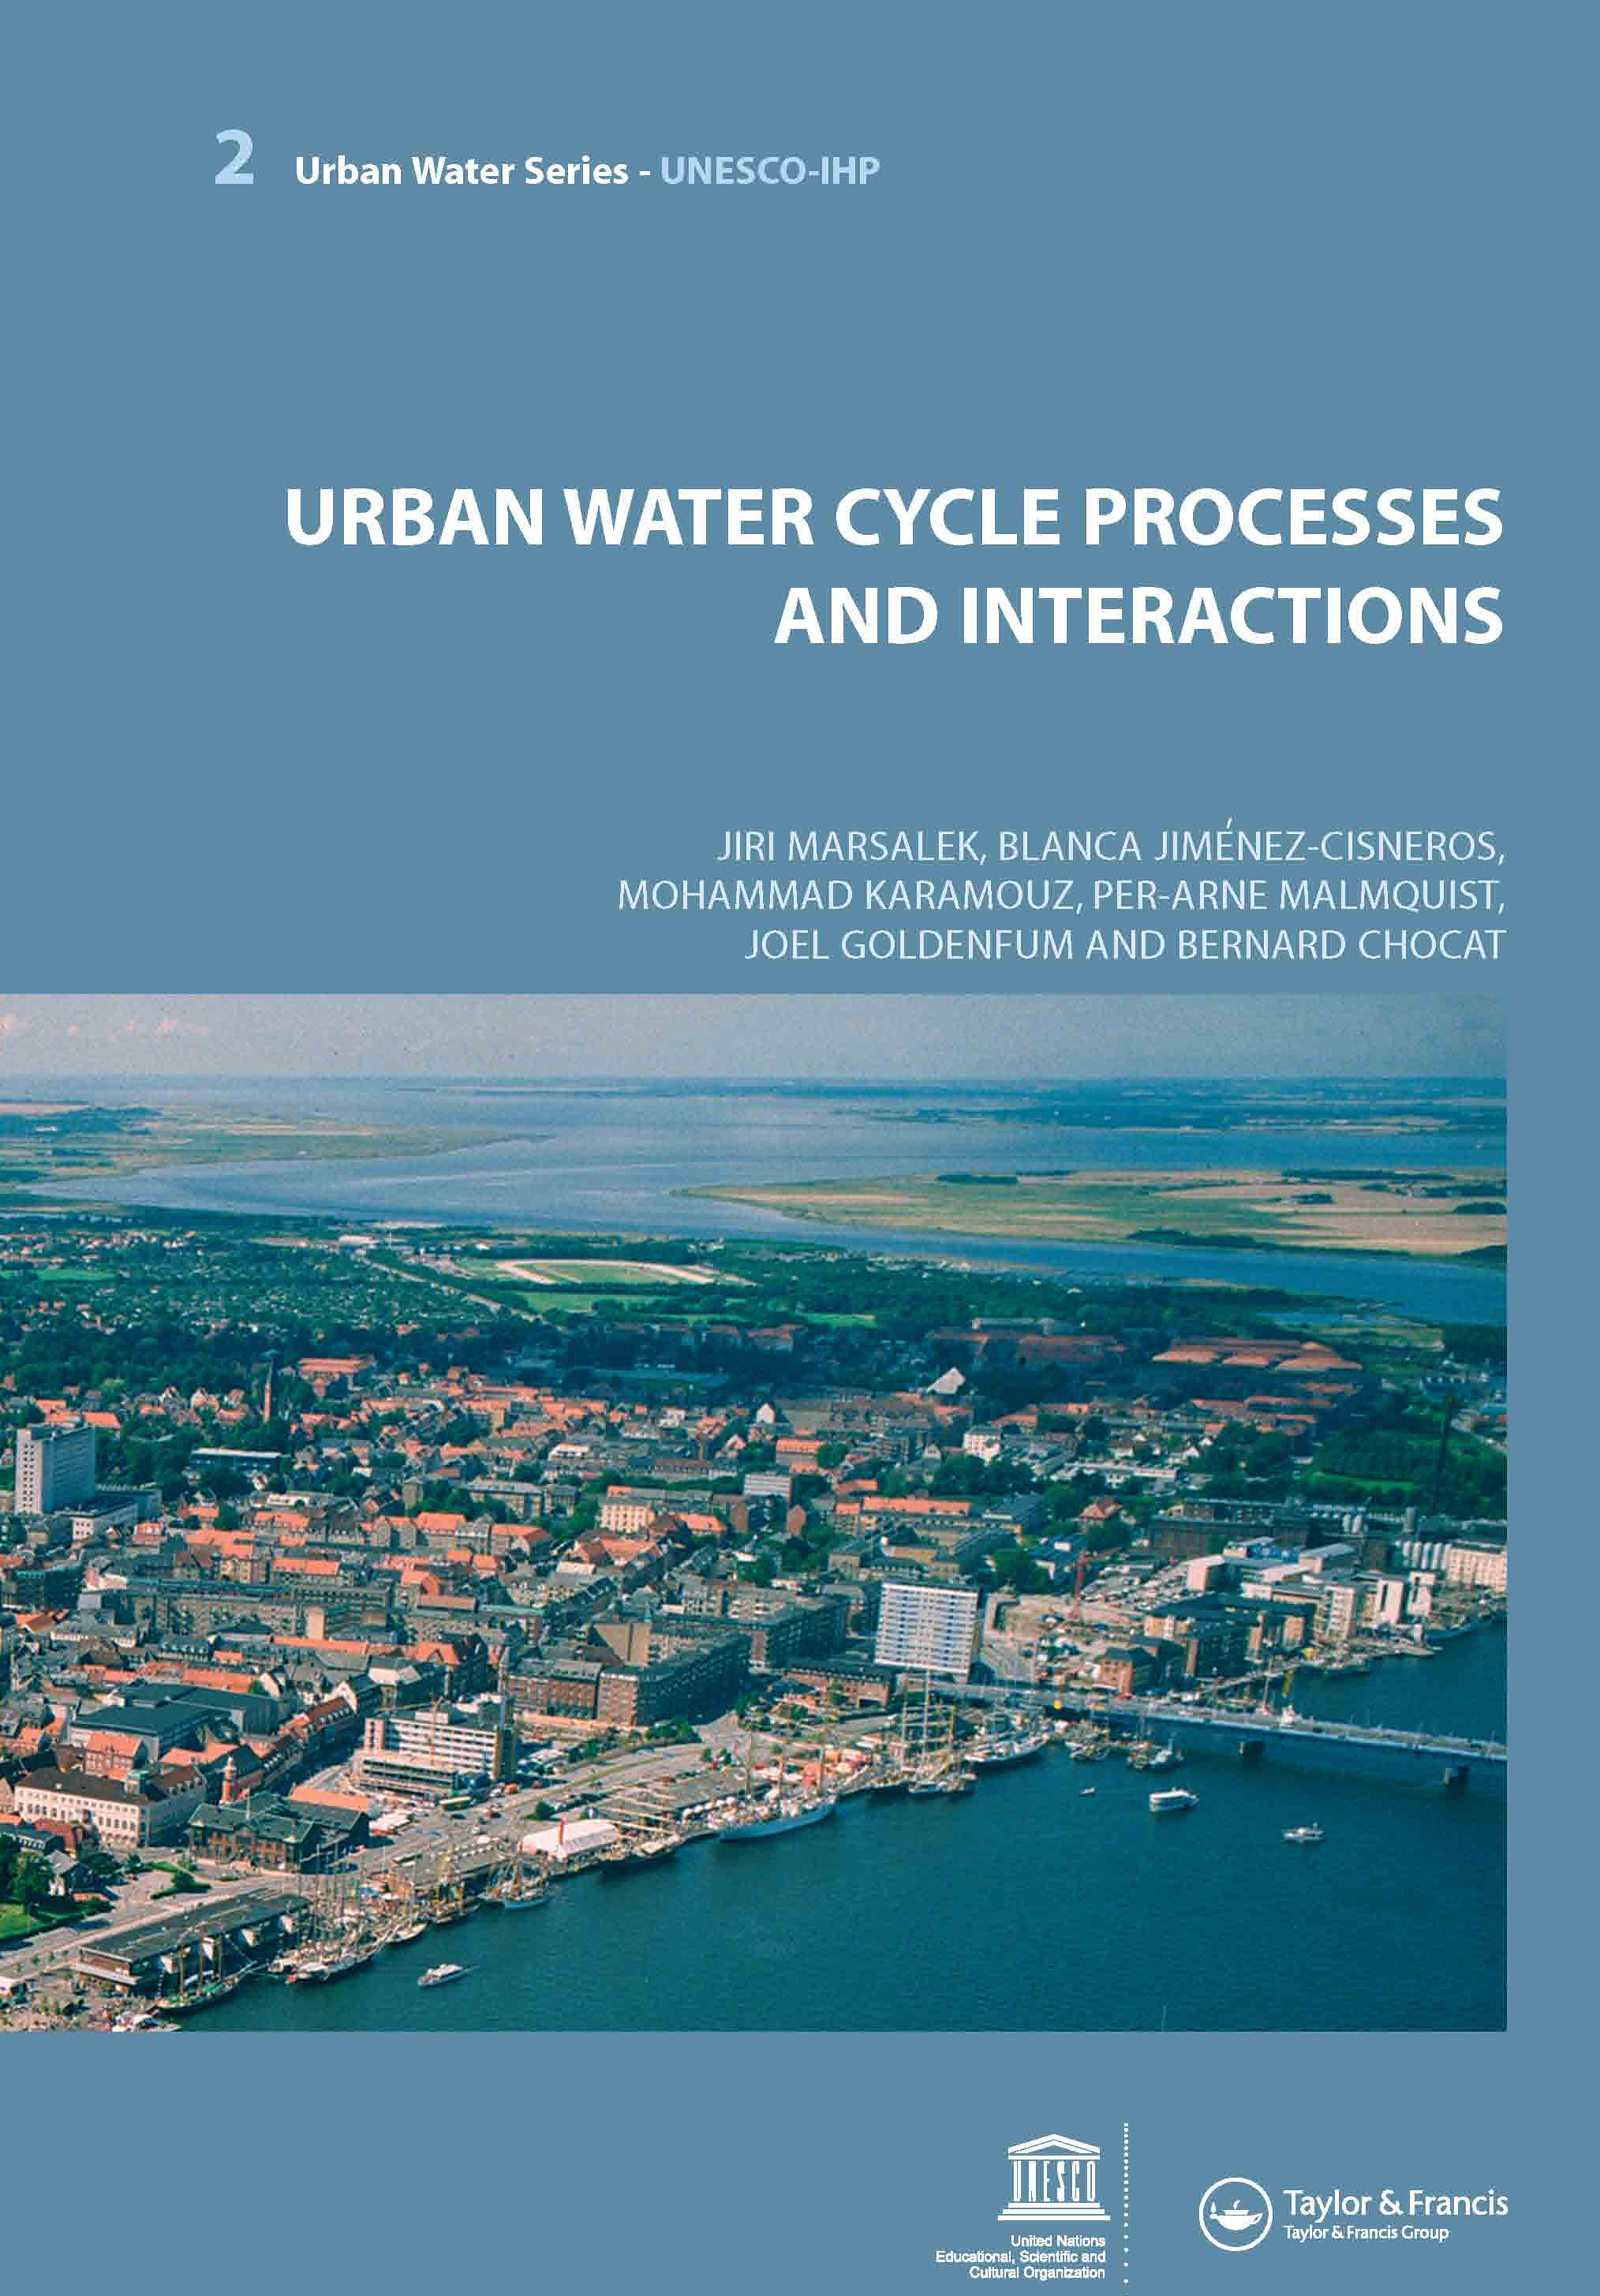 Urban Water Cycle Processes and Interactions: Urban Water Series - UNESCO-IHP book cover